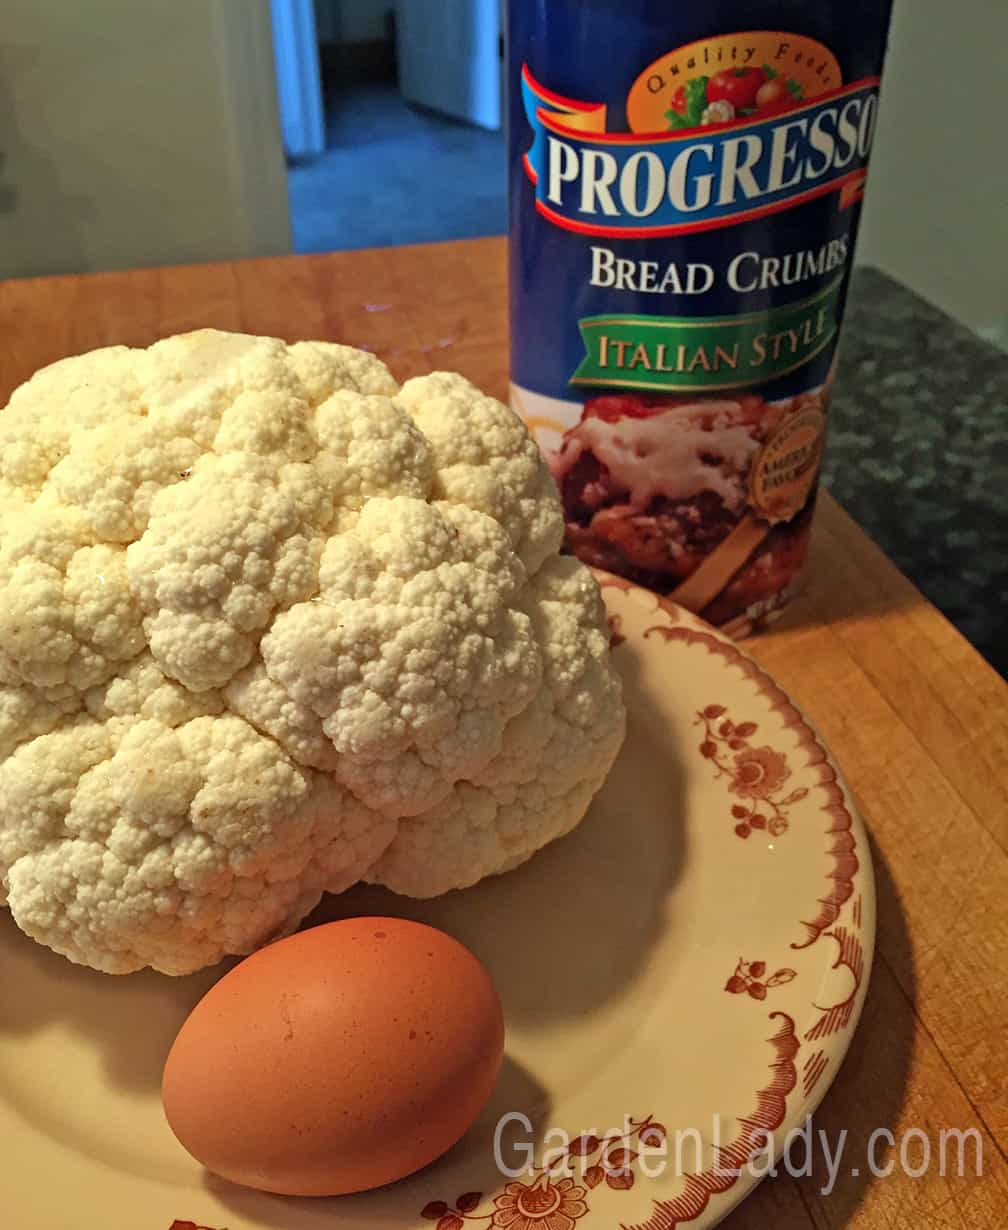 One head of cauliflower, one egg, and bread crumbs. Simple. I used Italian flavored bread crumbs, but you could use plain or panko style as well.